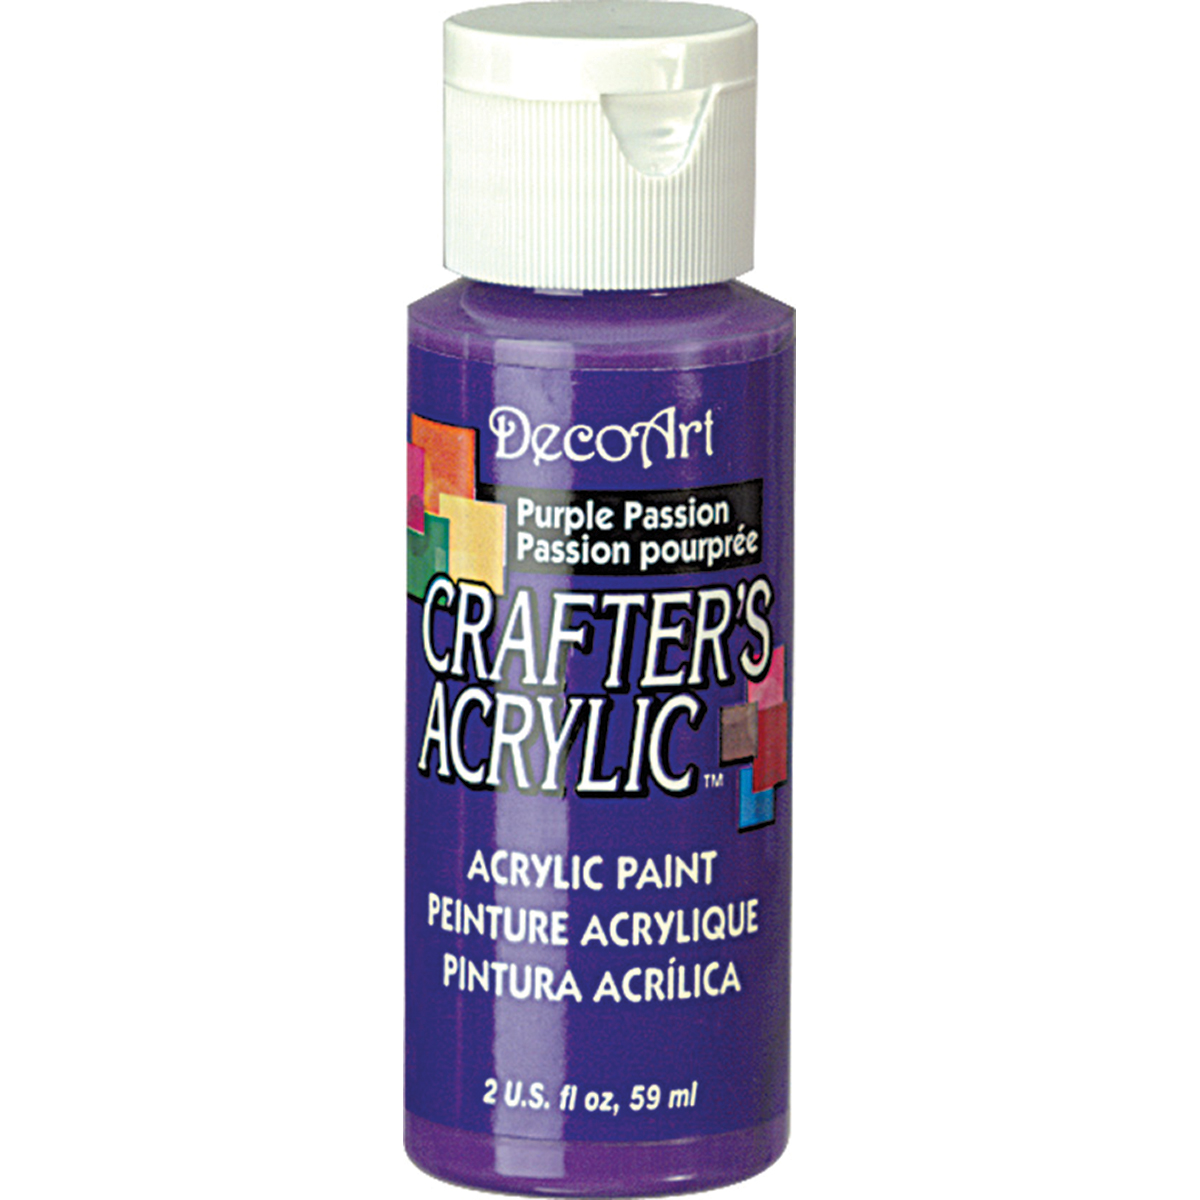 Crafter's Acrylic Gloss All-Purpose Paint 2oz-Purple Passion